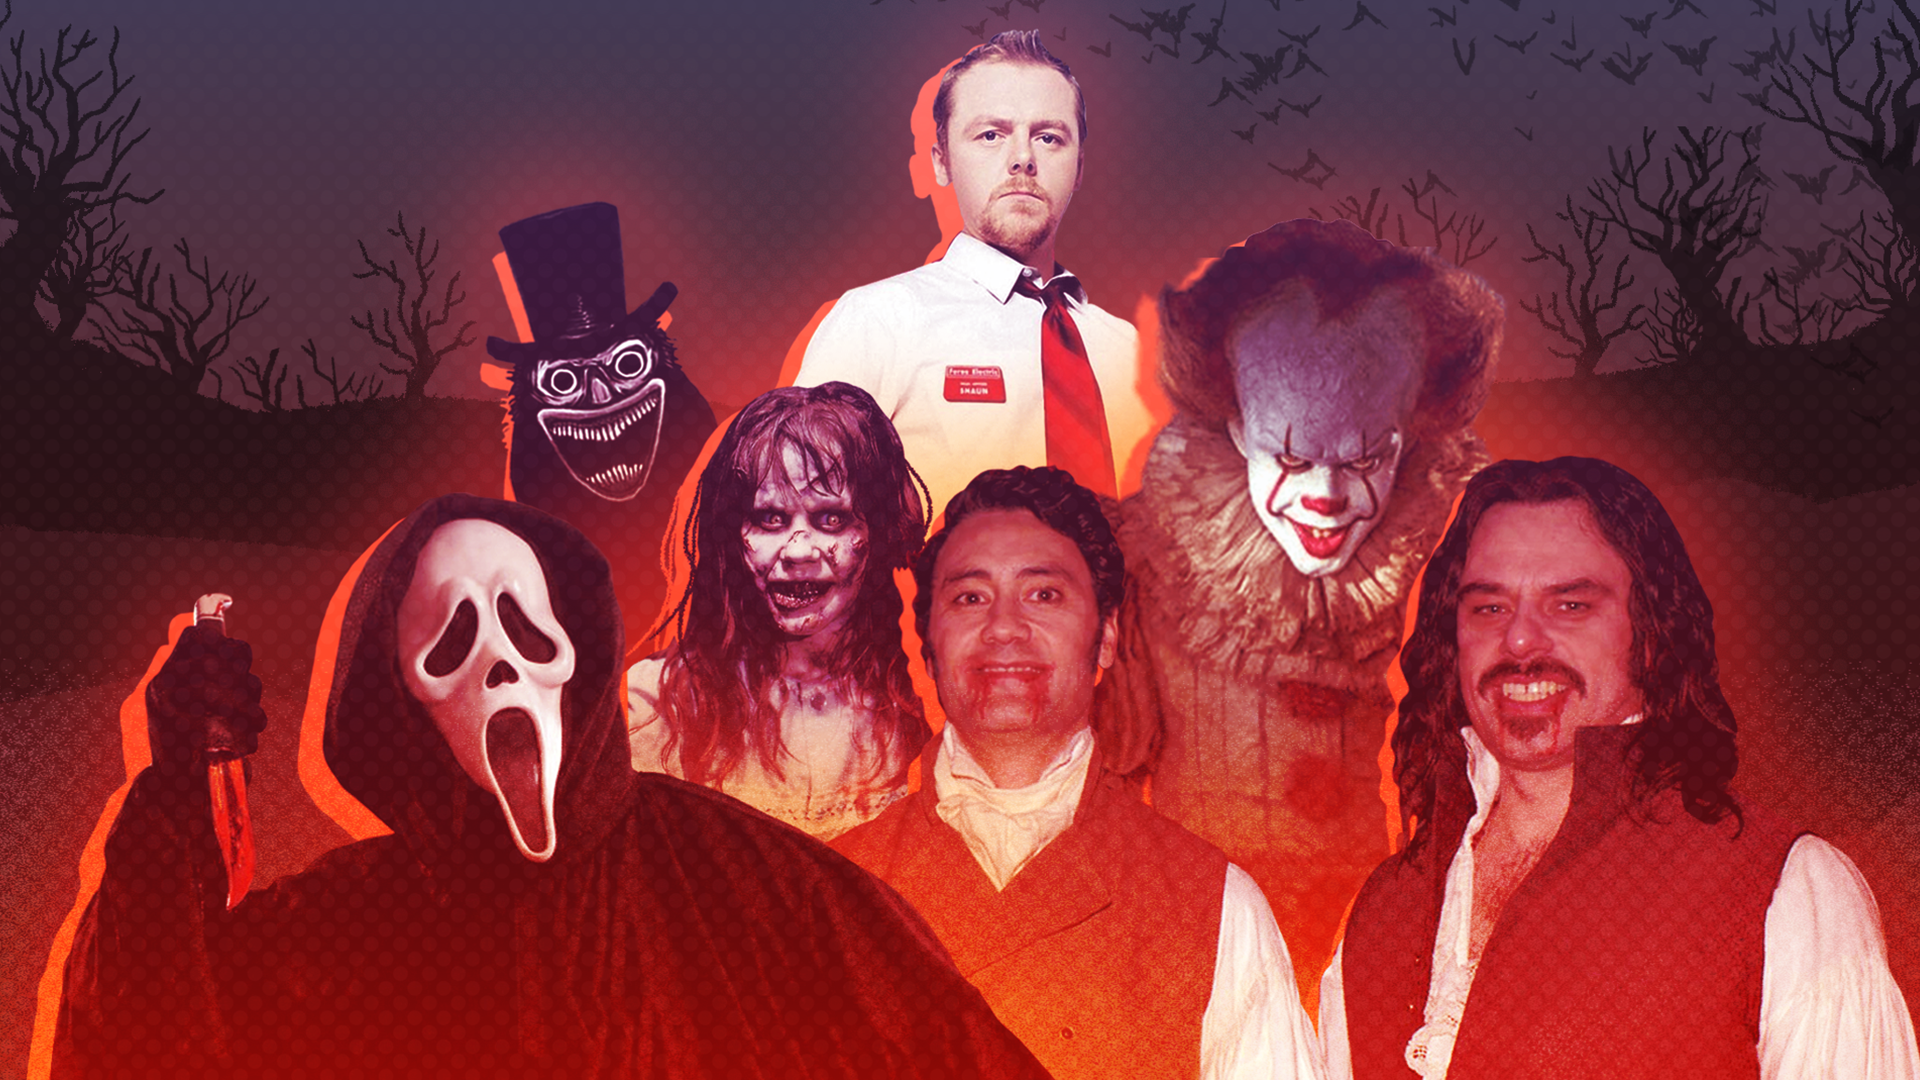 31 Scary Movies To Watch This October